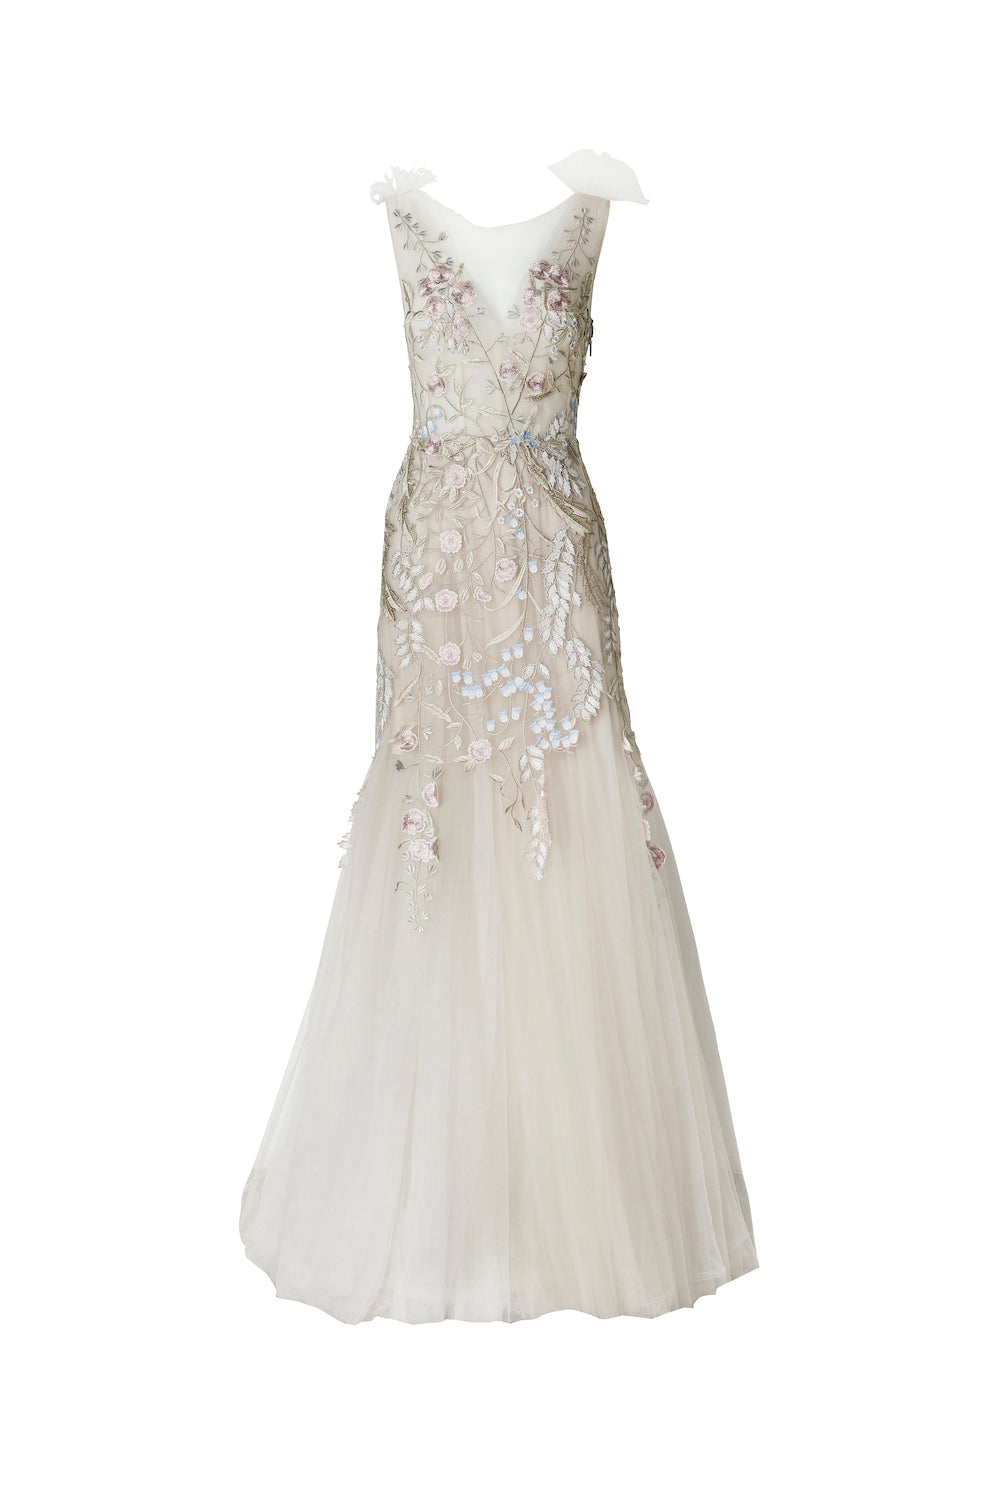 lace wedding dresses online